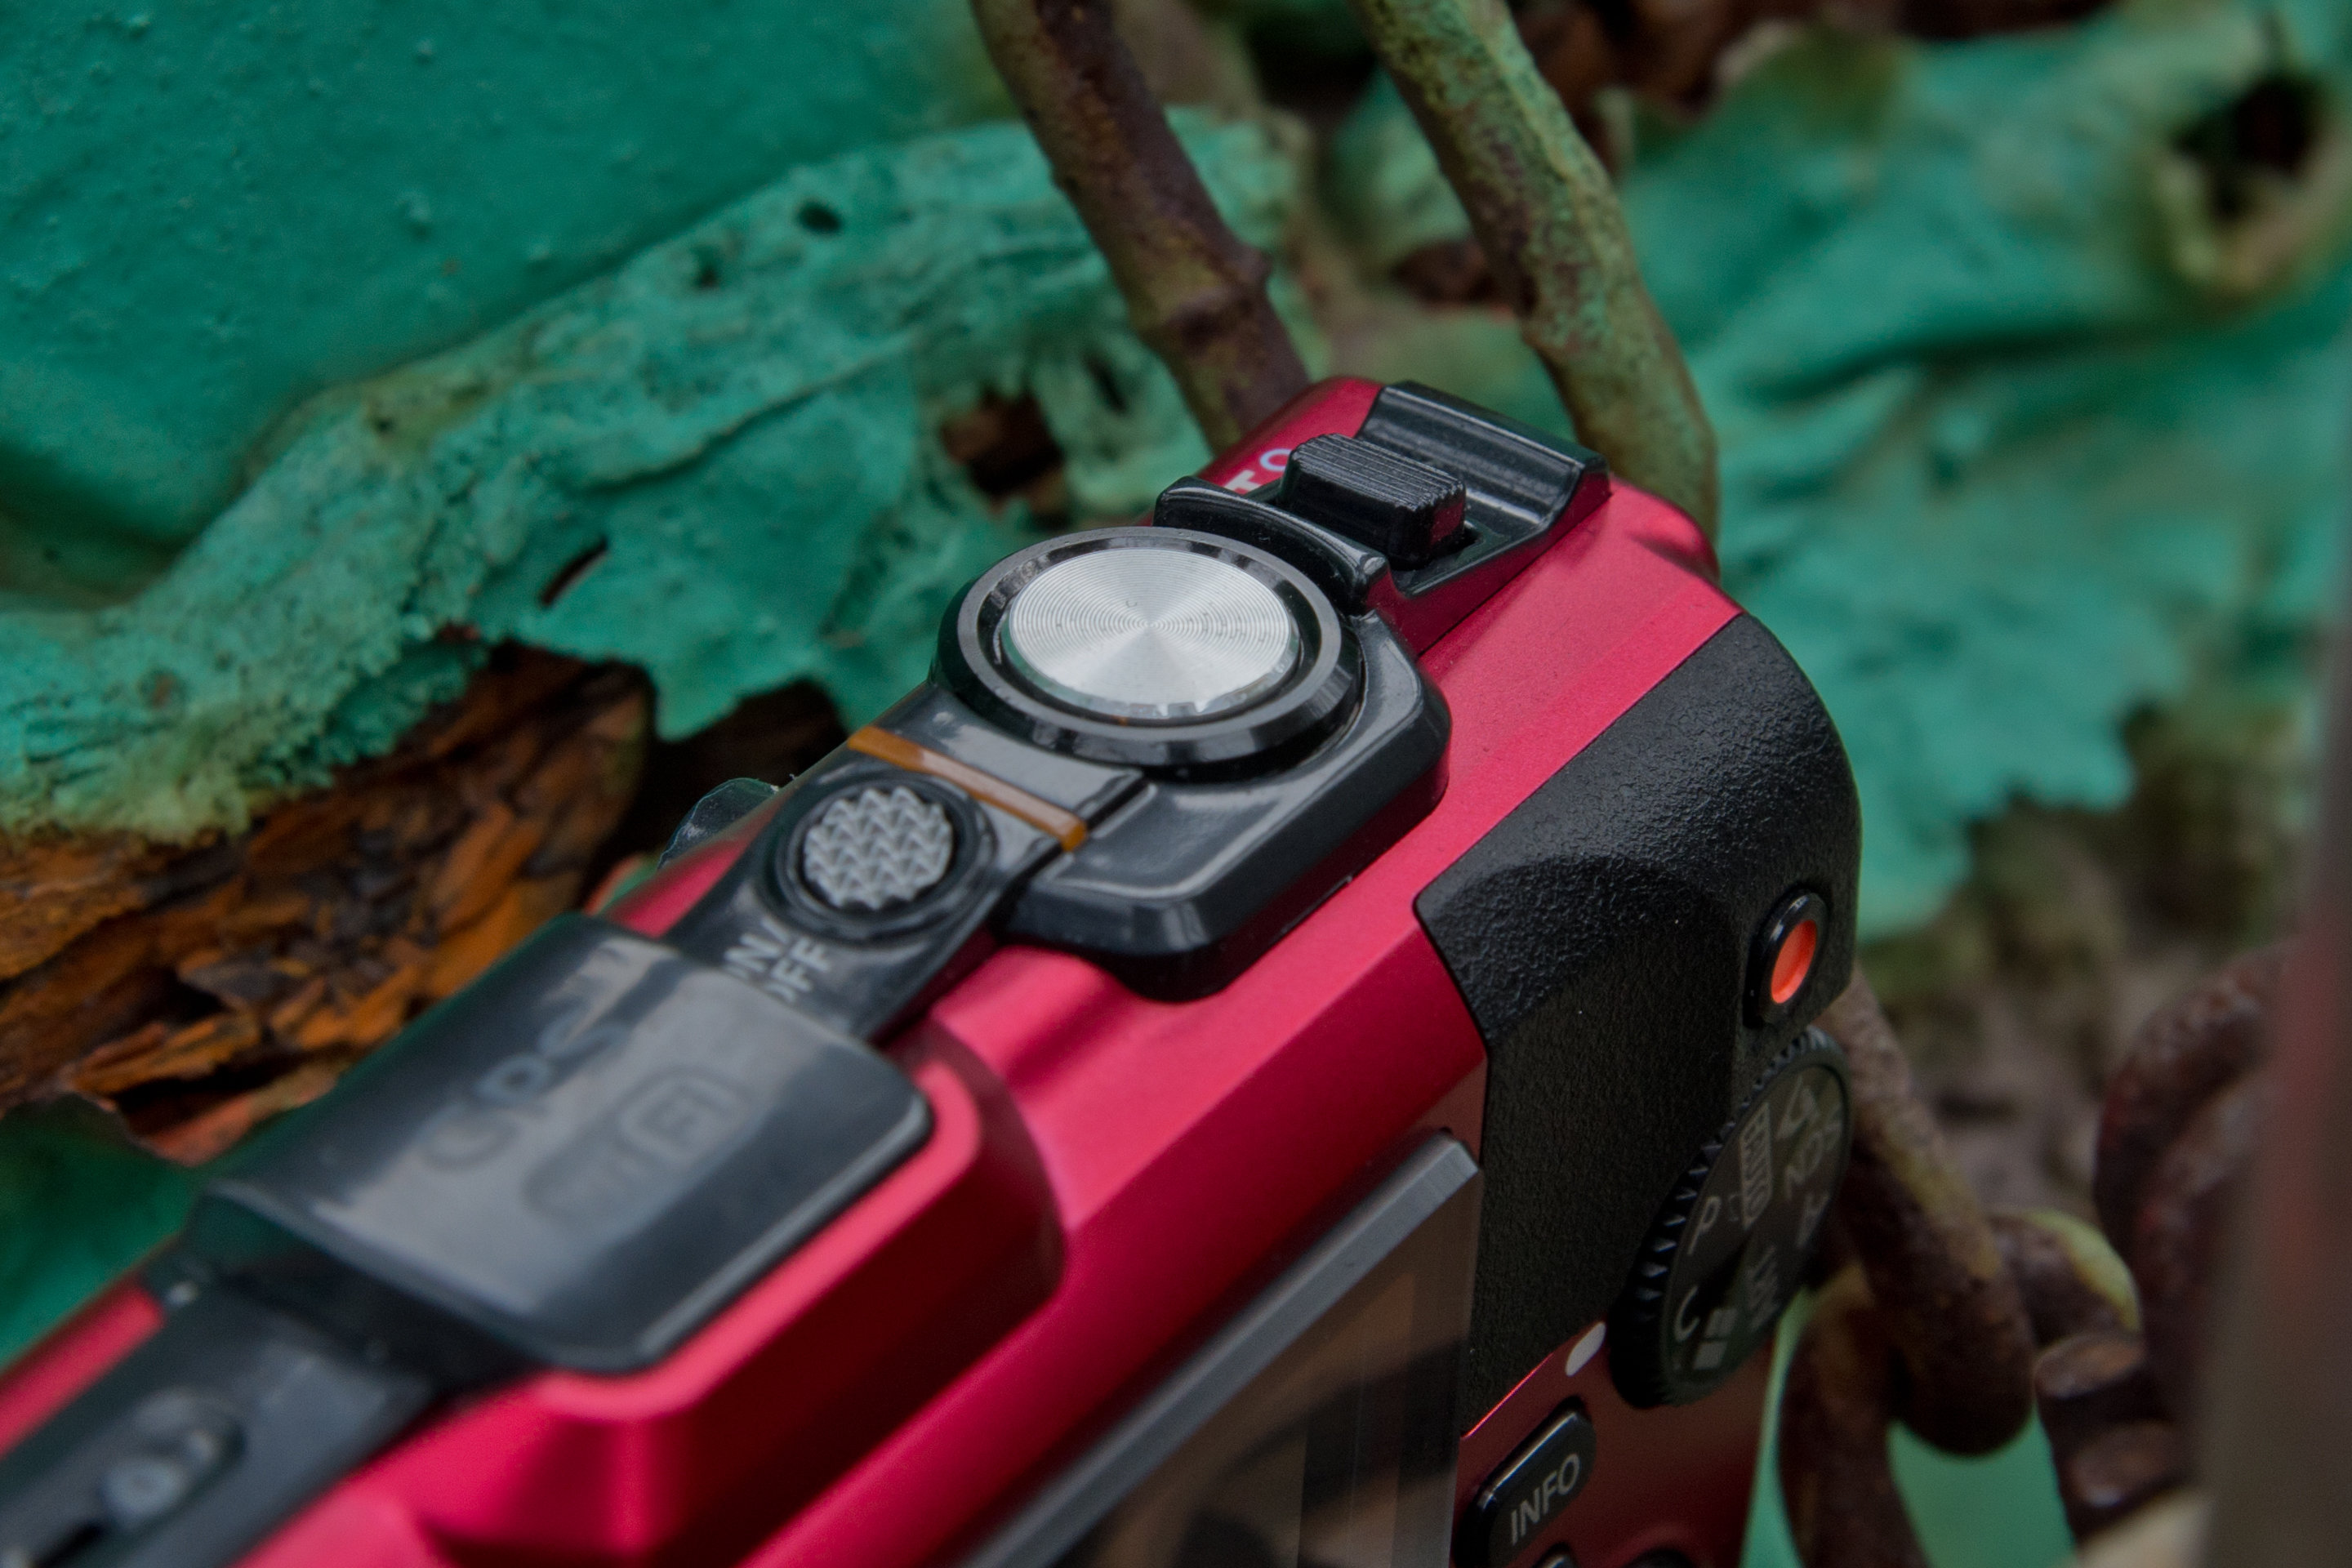 A picture of the Olympus TG-3's shutter release.